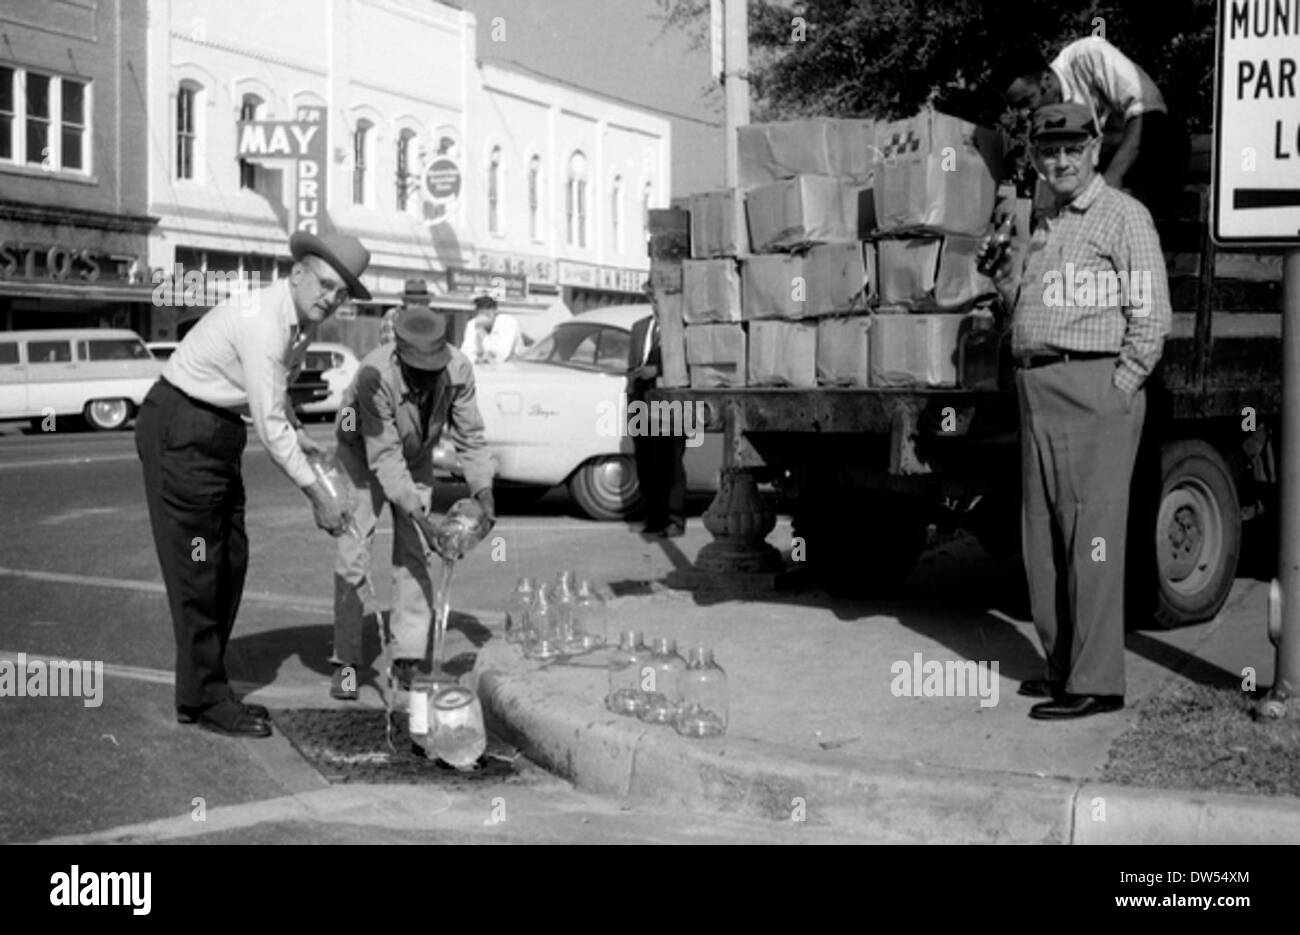 Gadsden County Deputy Sheriff Robert Martin disposing of moonshine in Quincy, Florida - Stock Image